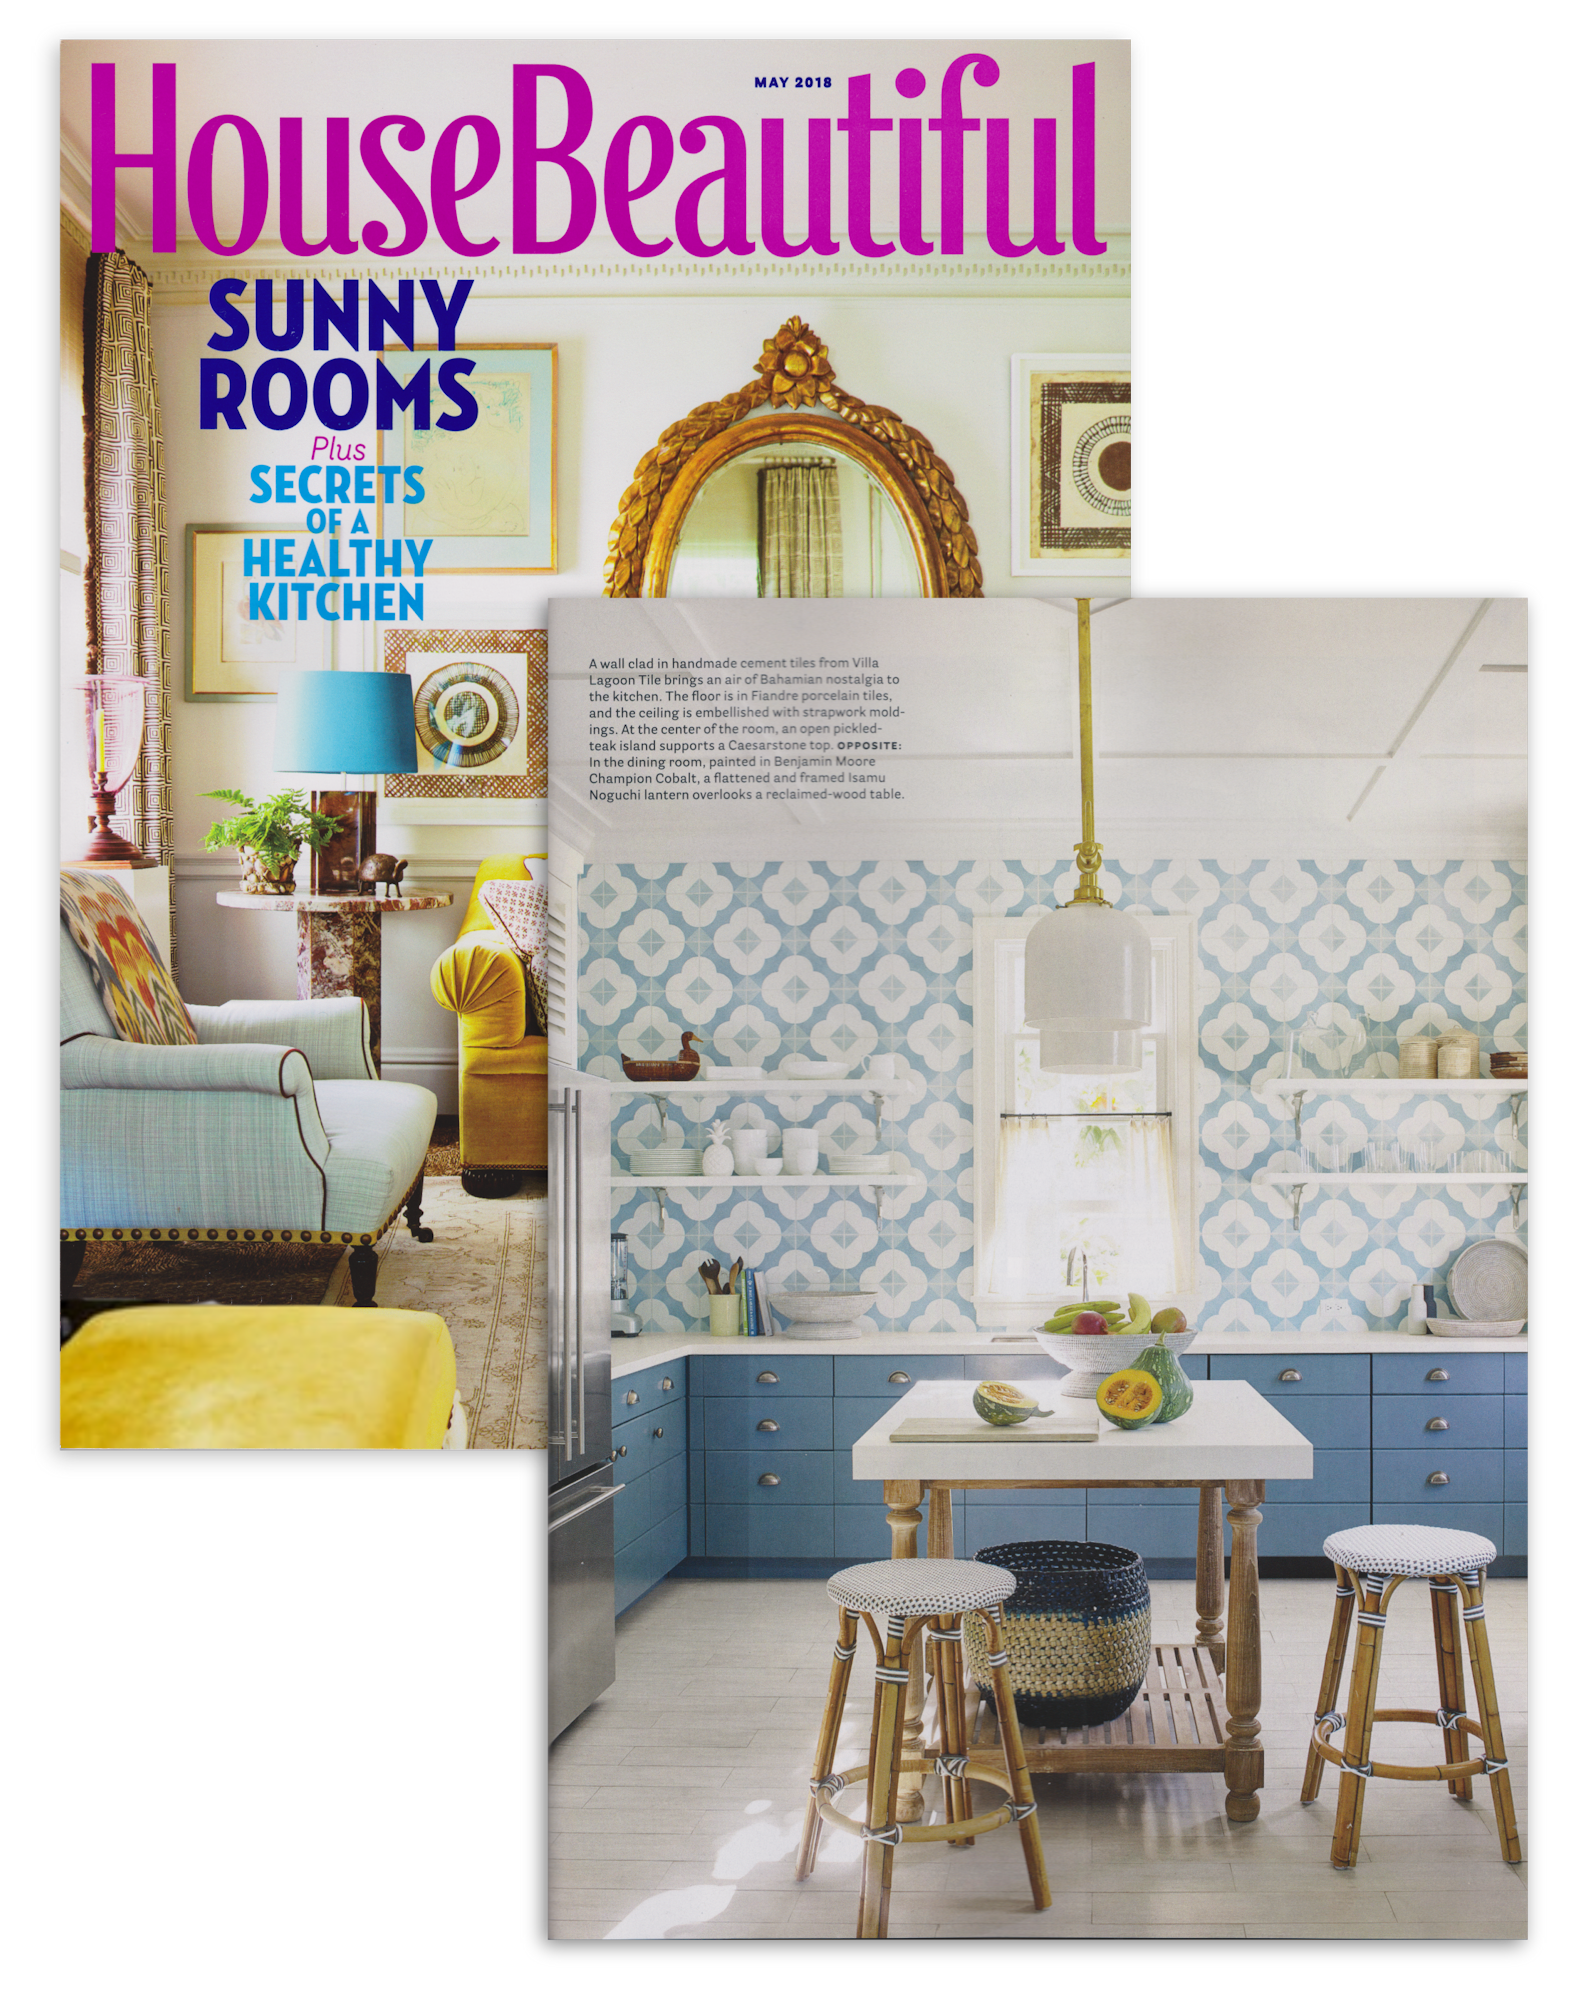 House Beautiful Magazine Cover and interior page from May 2018 featuring Tom Scheerer